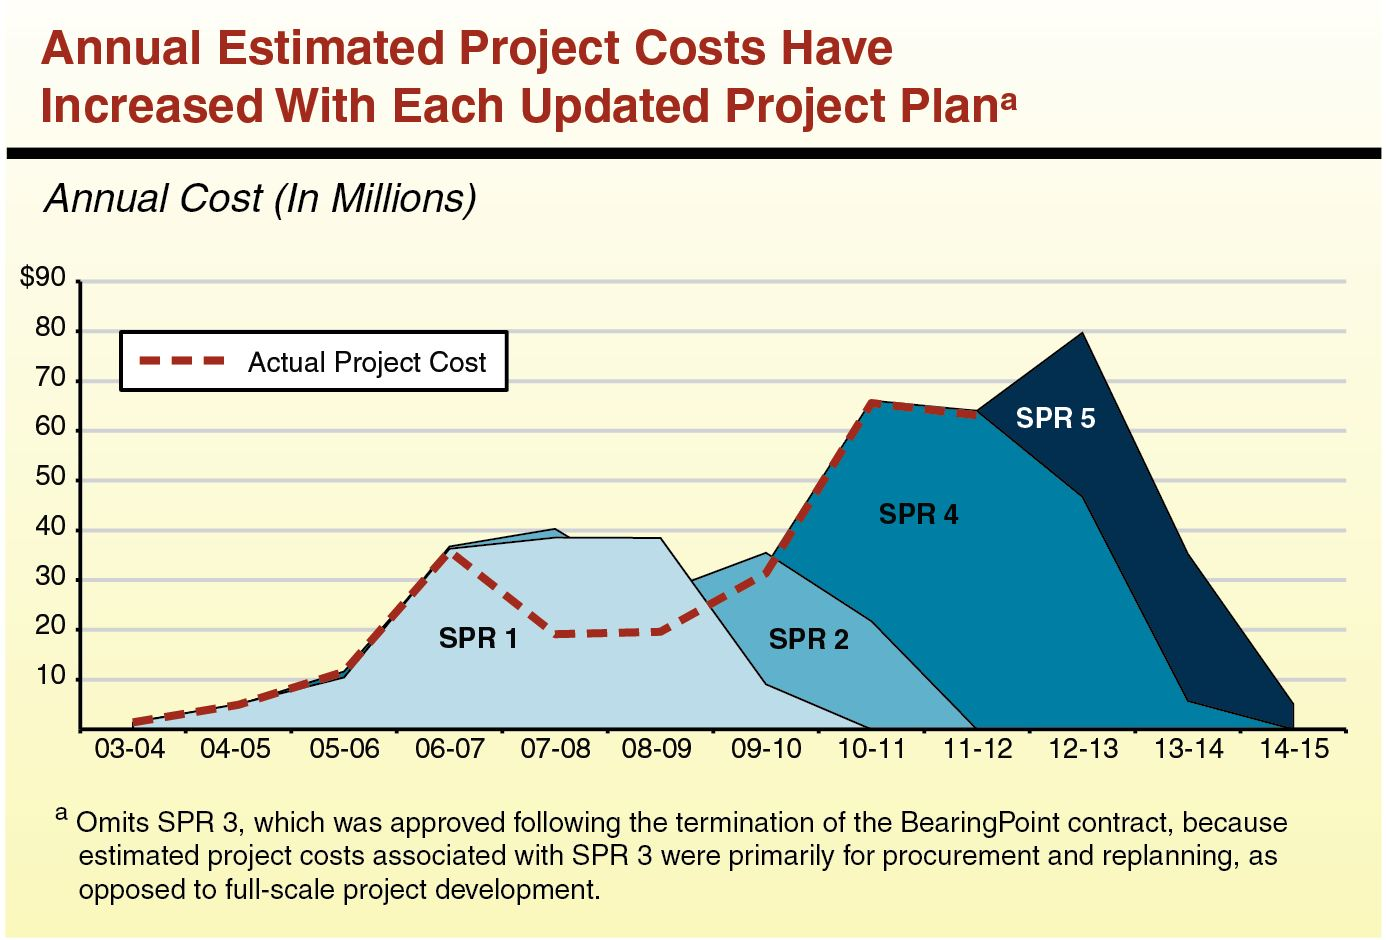 Annual Estimated Project Costs Have Increased With Each Updated Project Plan